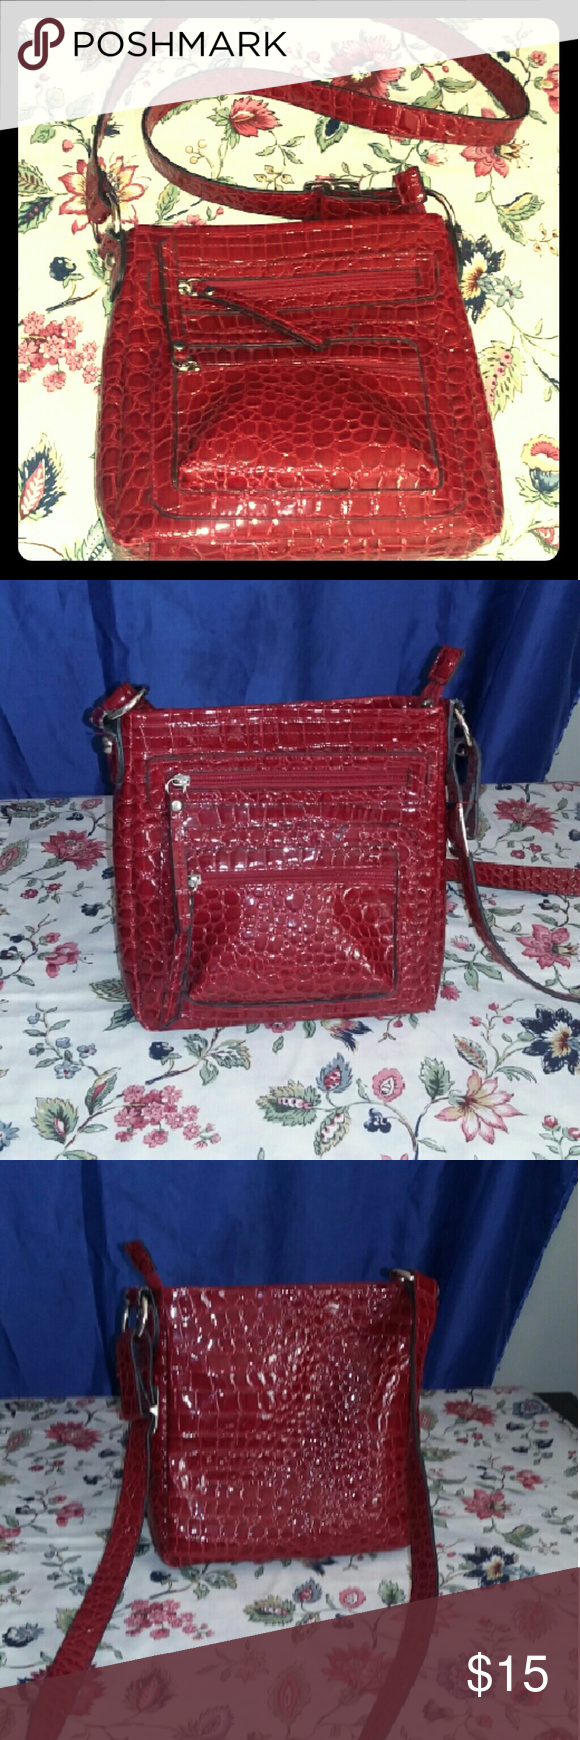 Crossbody Sm/Med Red Shiny Handbag NWOT A beautiful bright red crossbody purse by Bueno. One side has two separate pockets on the outside and the other side is completely flush no pockets on the inside there is a cell phone compartment and a zipper compartment. There are no stains or marks in this purse at all. The strap is adjustable and it has never been moved. This purse is in pristine condition. And I'm guessing it's patent leather or a shiny vinyl material. There is no tag that says…